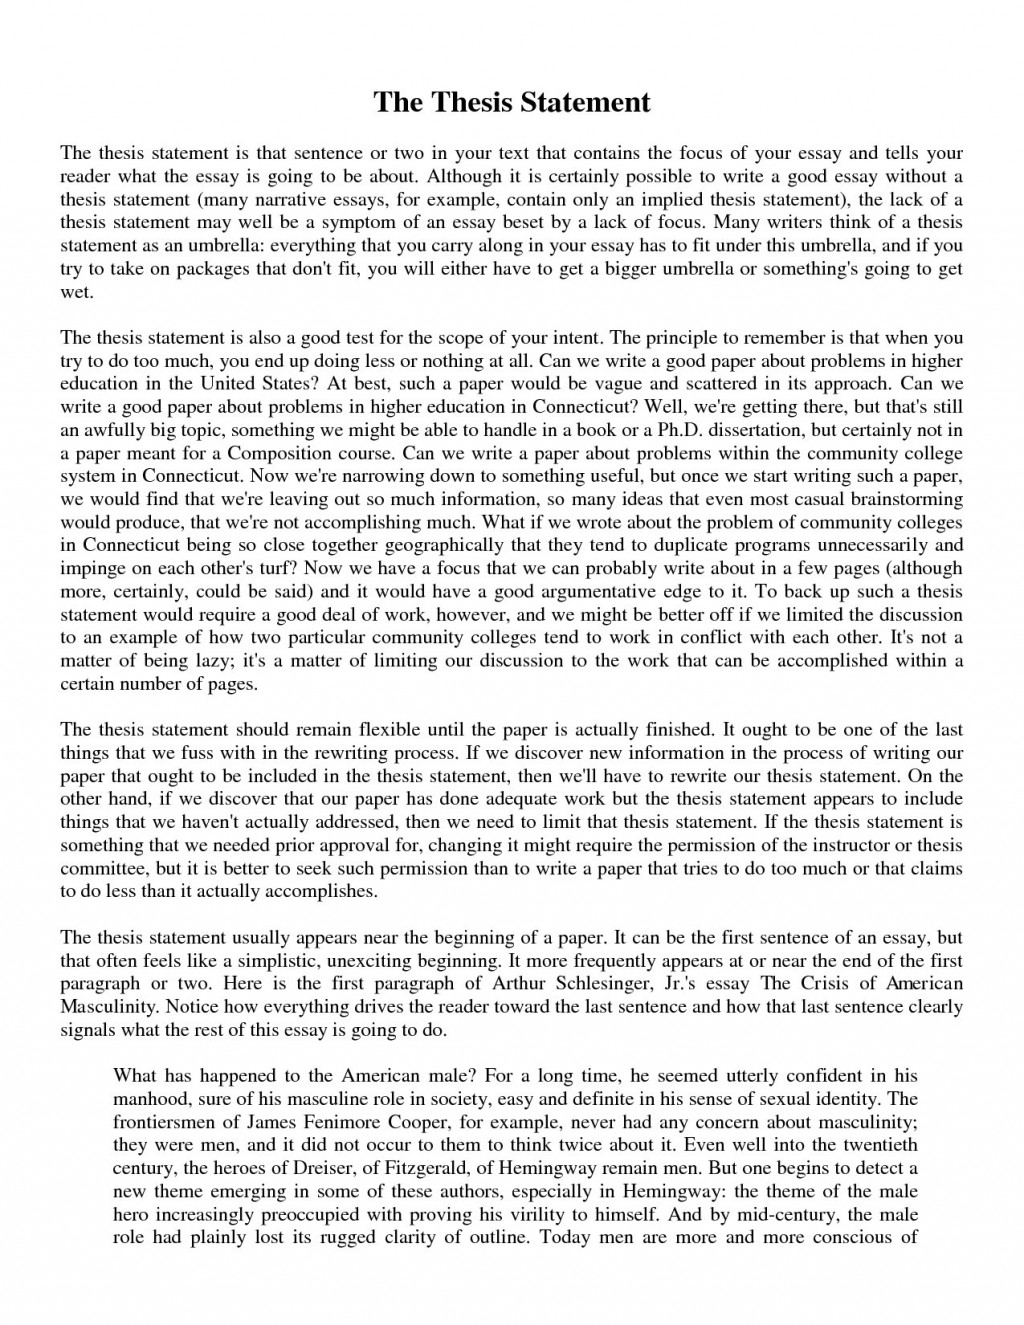 003 Thesis Statement Essay Lt1odxucuo Stirring Definition Examples For Argumentative Template Example Large